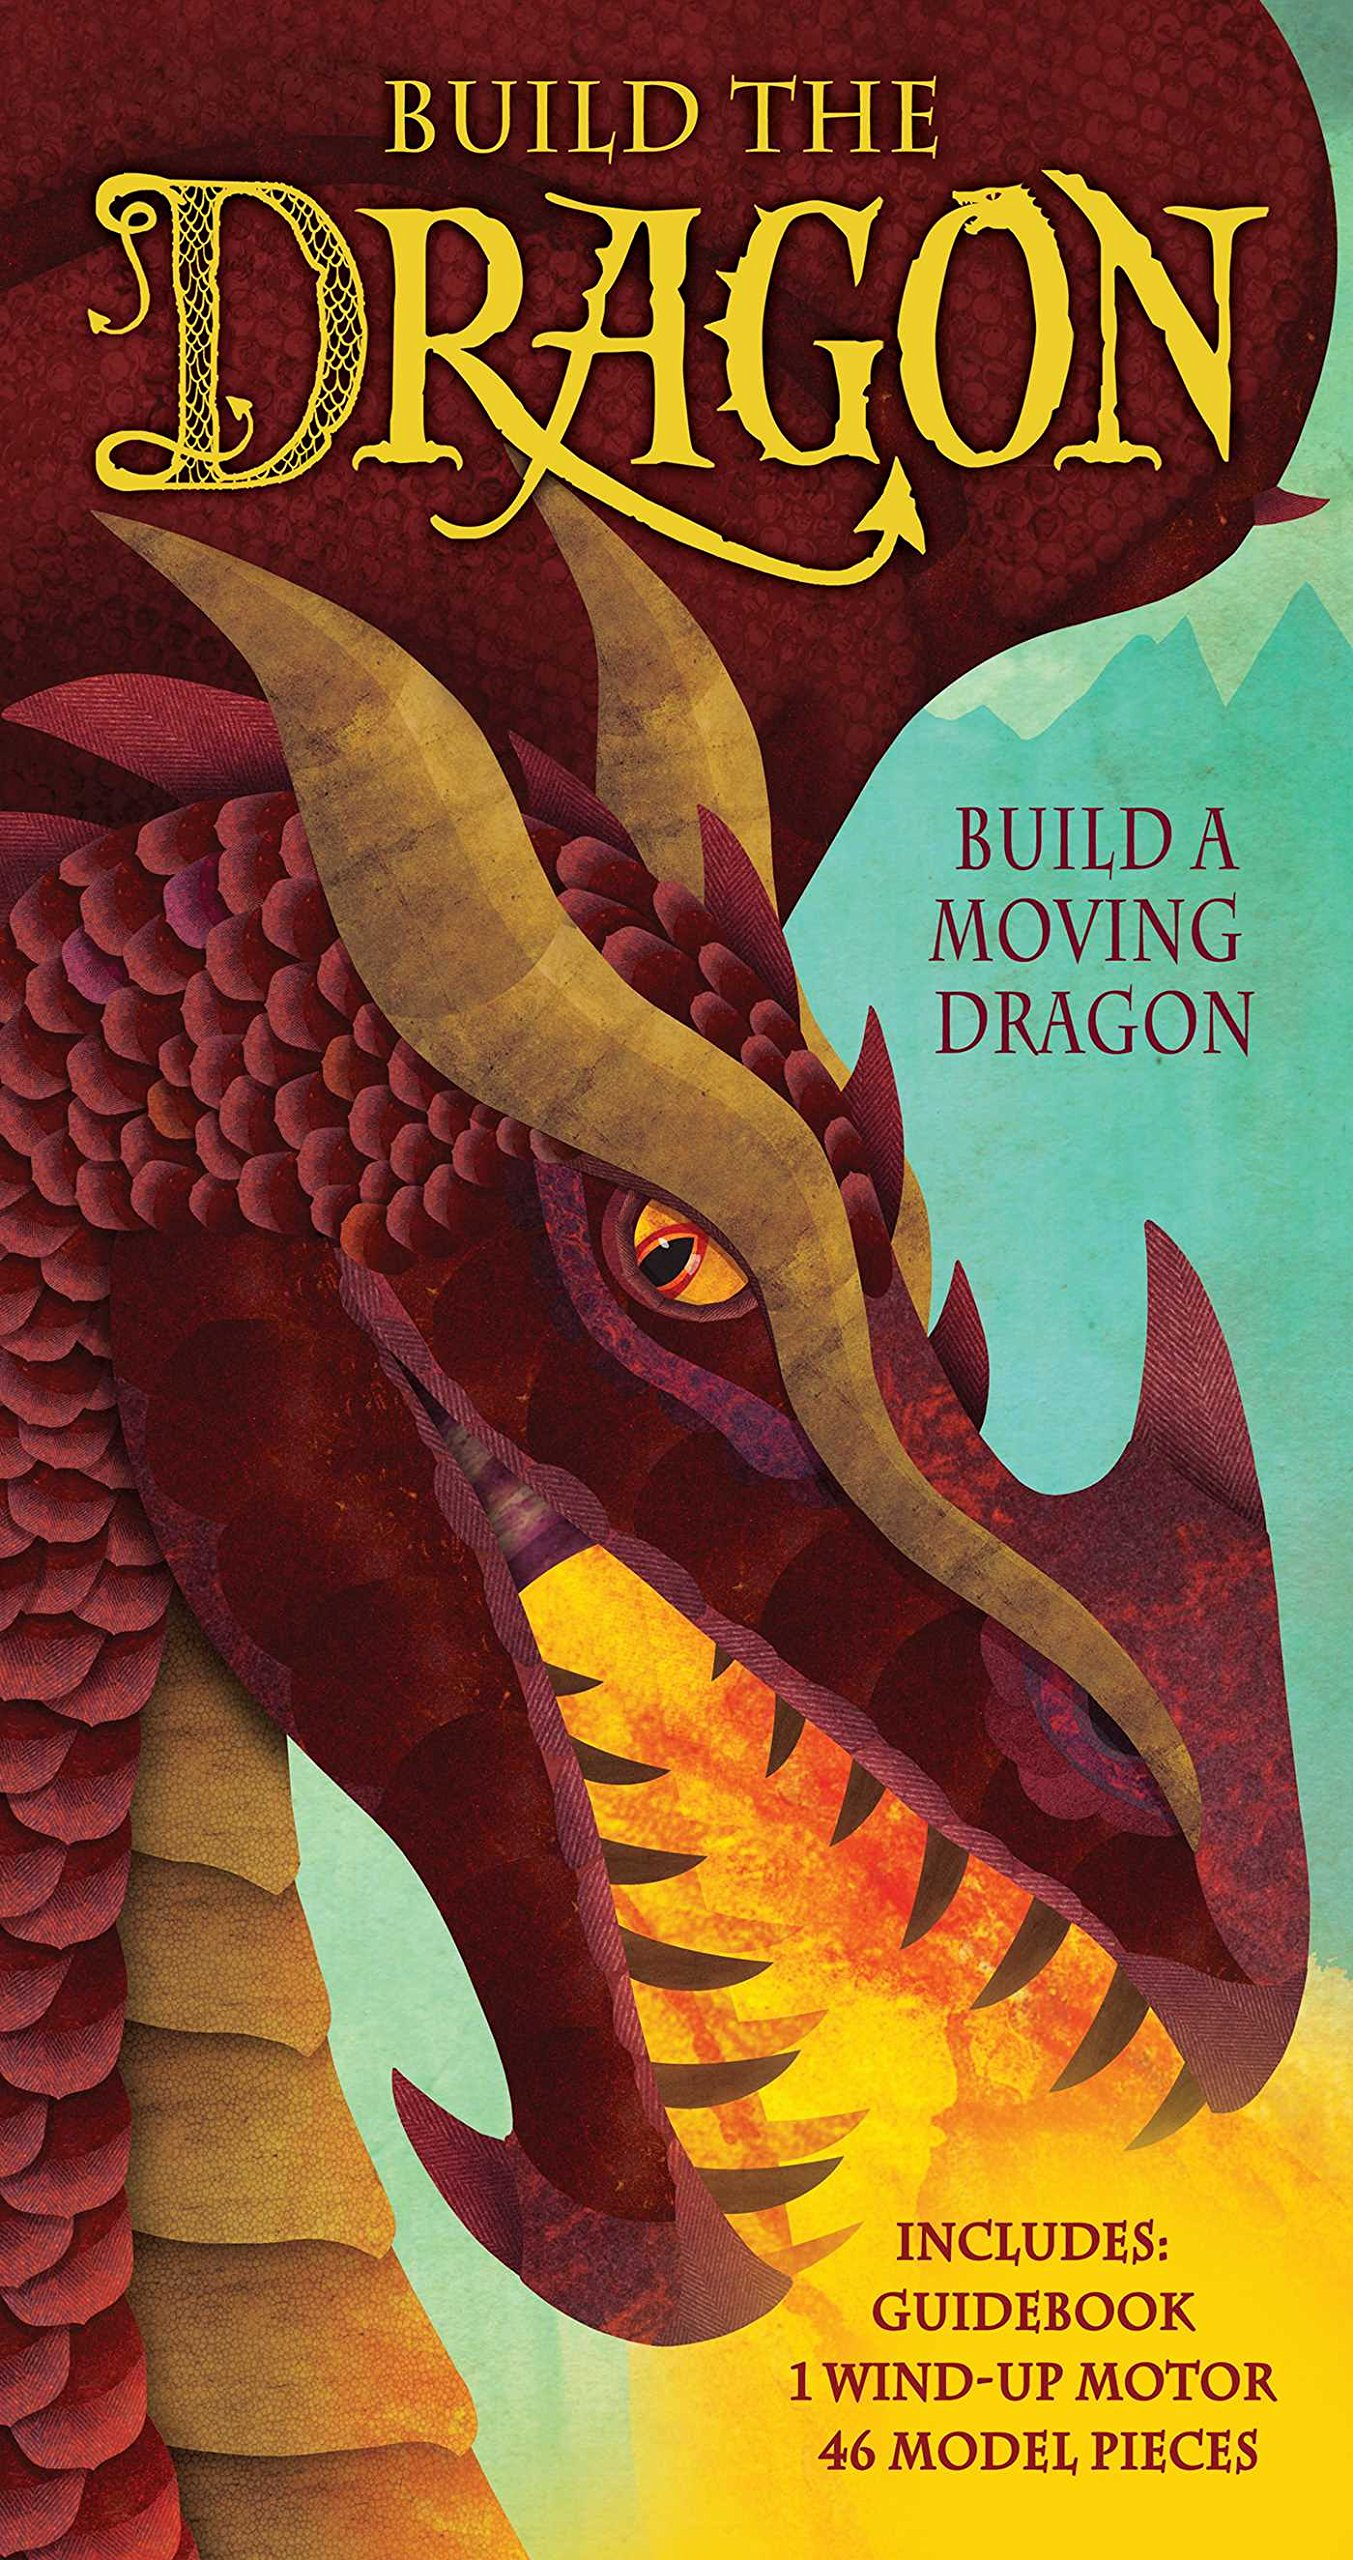 Build the dragon build it dugald a steer jonathan woodward build the dragon build it dugald a steer jonathan woodward 9781626867147 amazon books fandeluxe Gallery